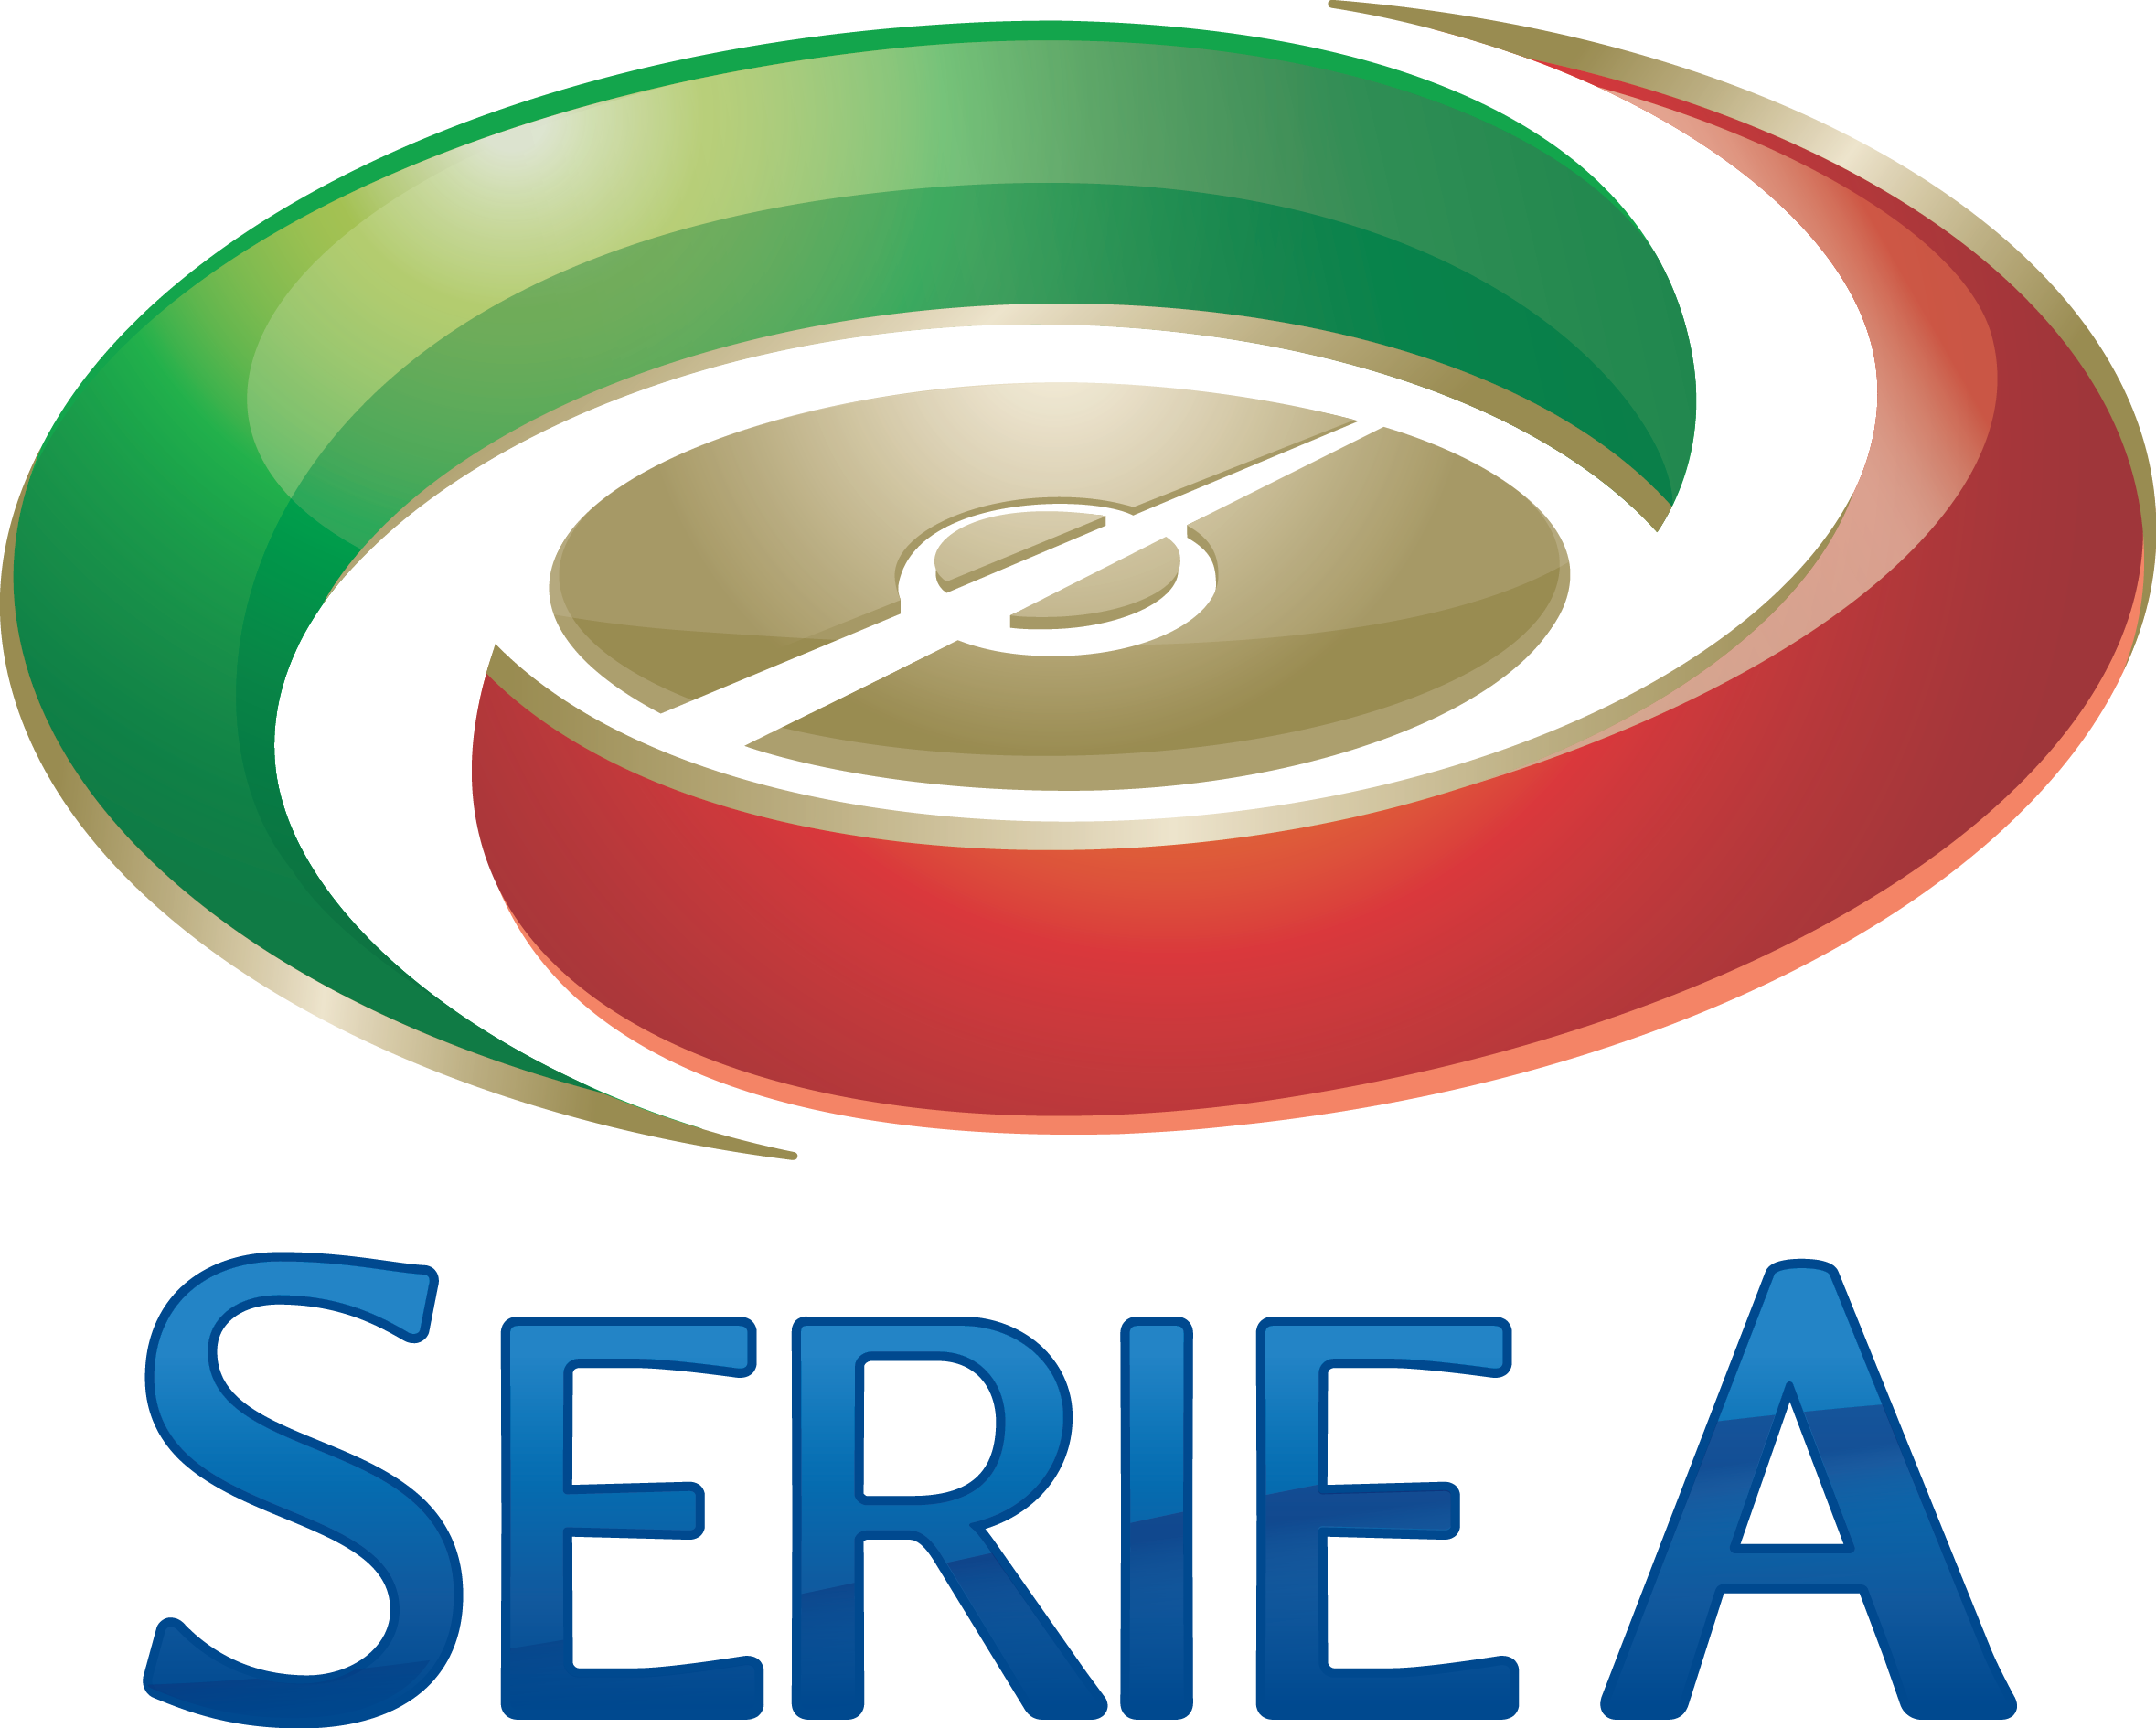 Lazio vs Torino 3-0 All goals and highlights 25/10/2015